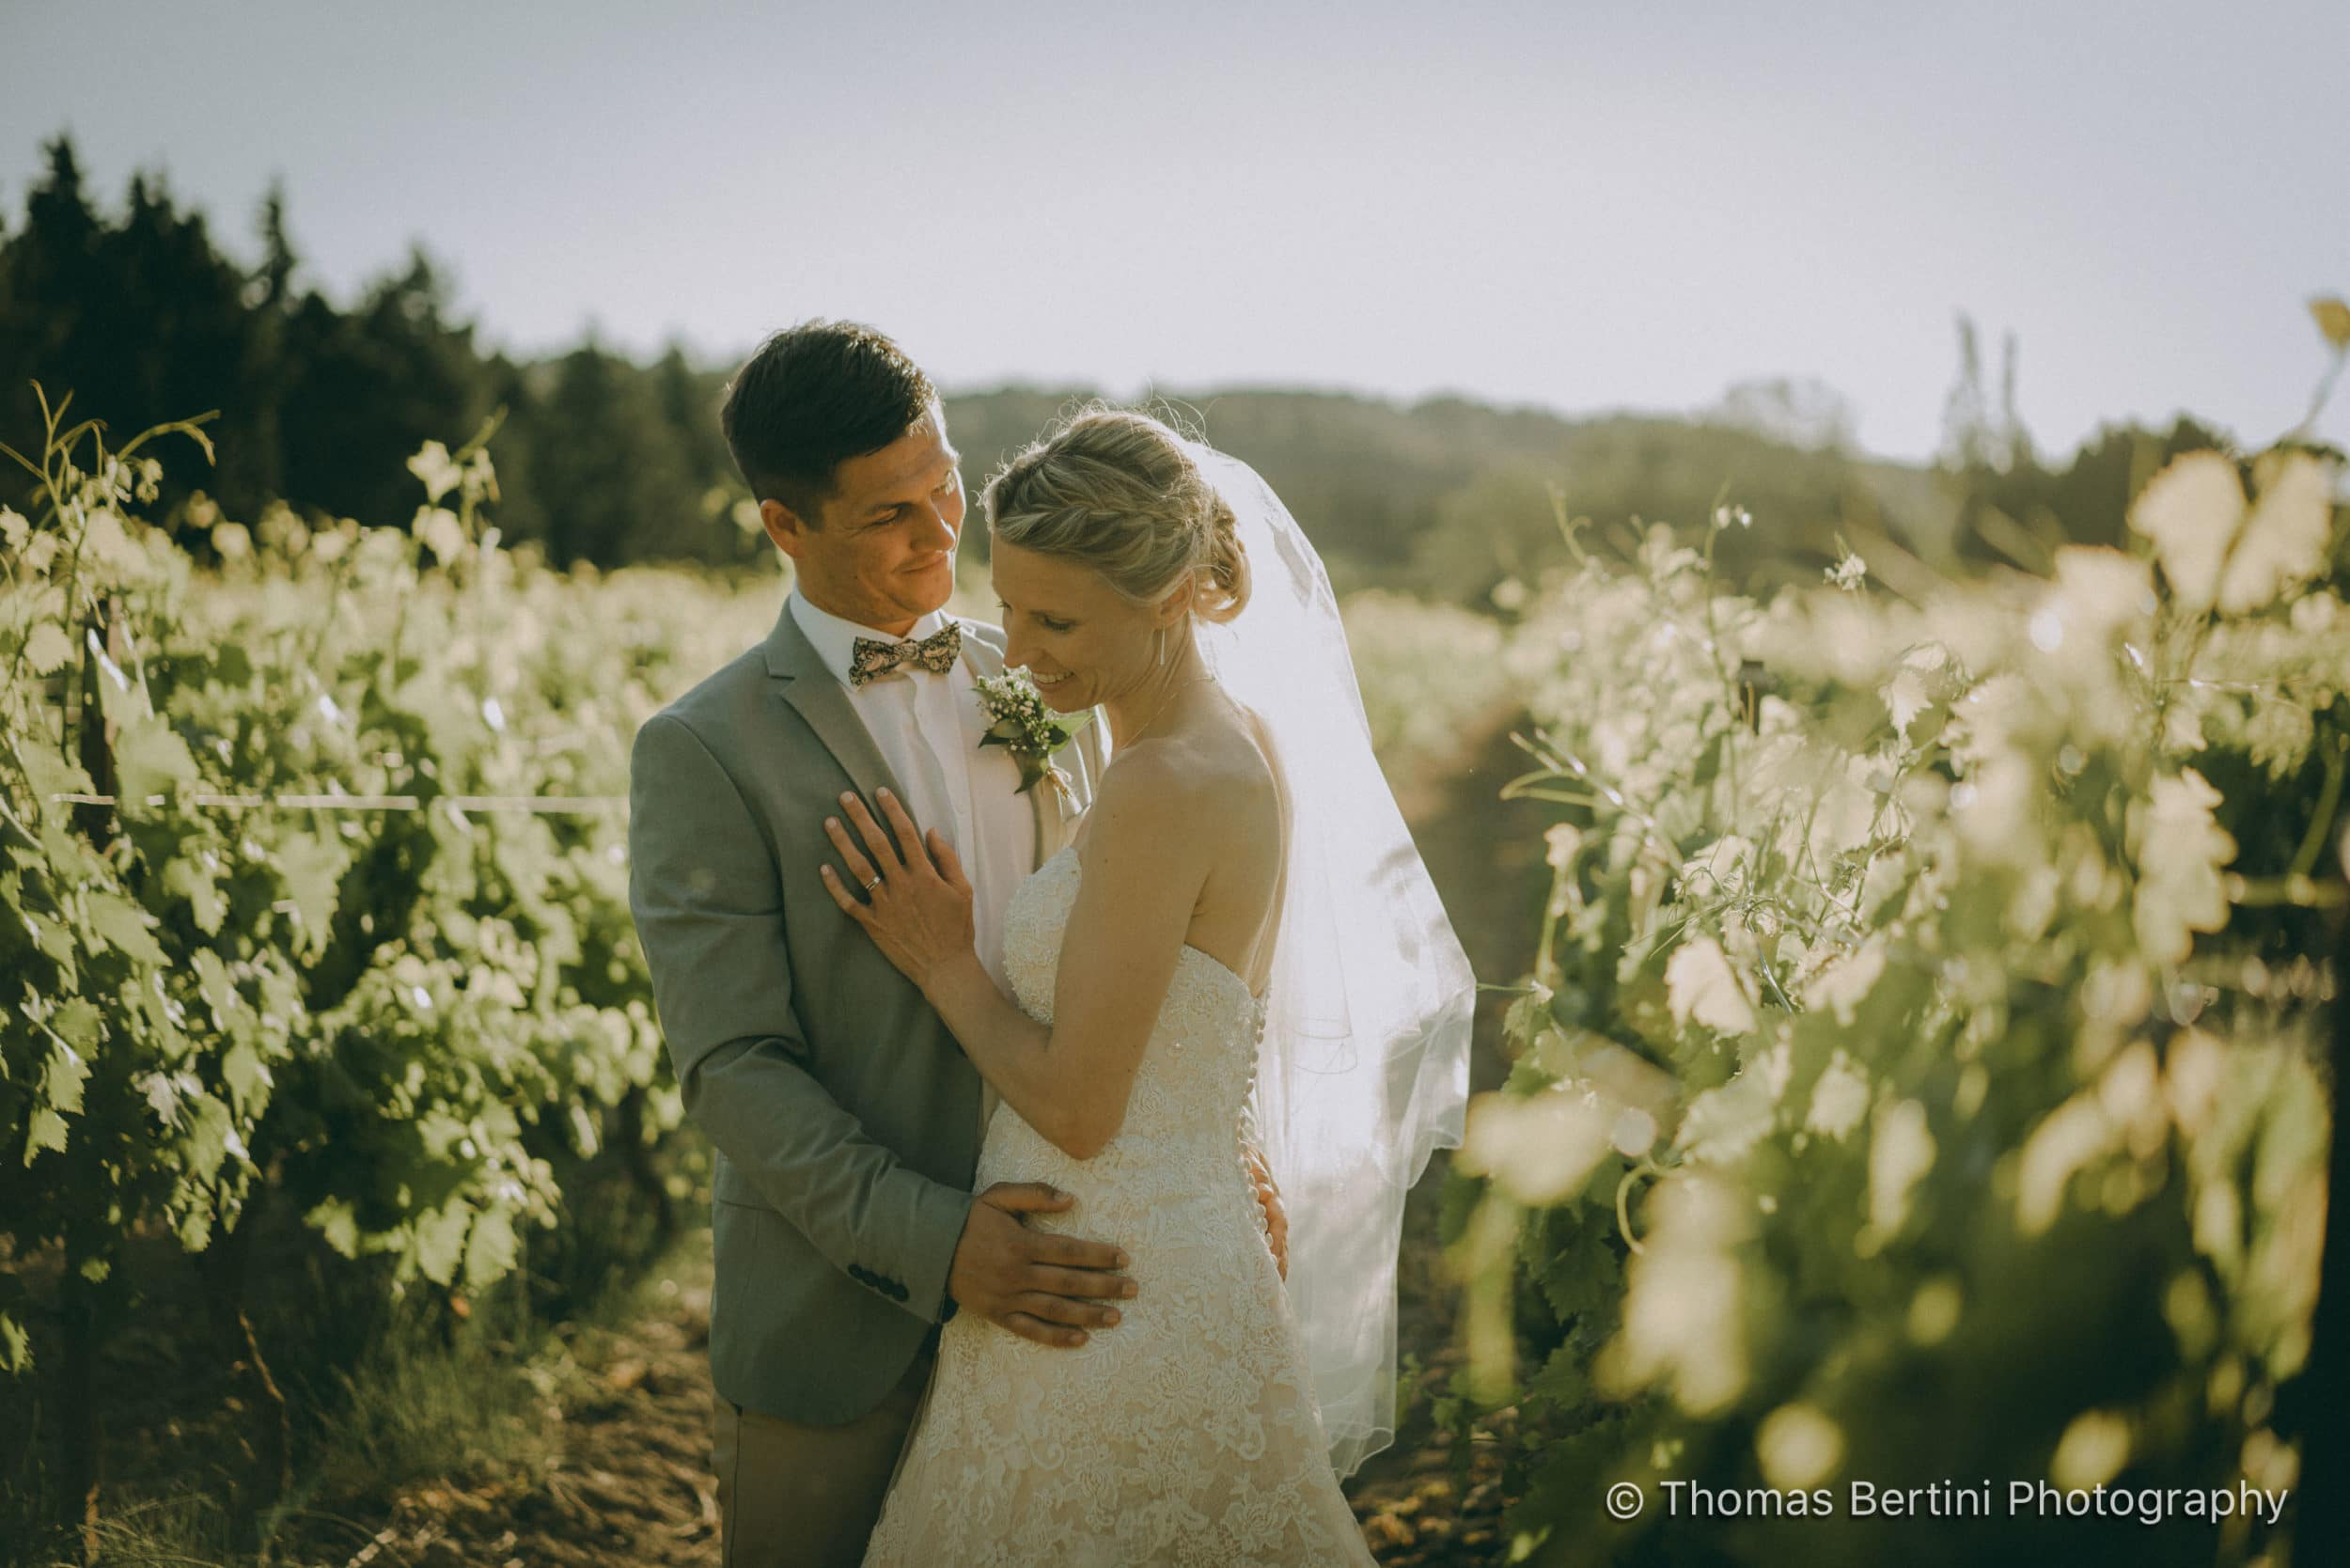 Thomas Bertini Photography - Wedding Photographer In Provence-46